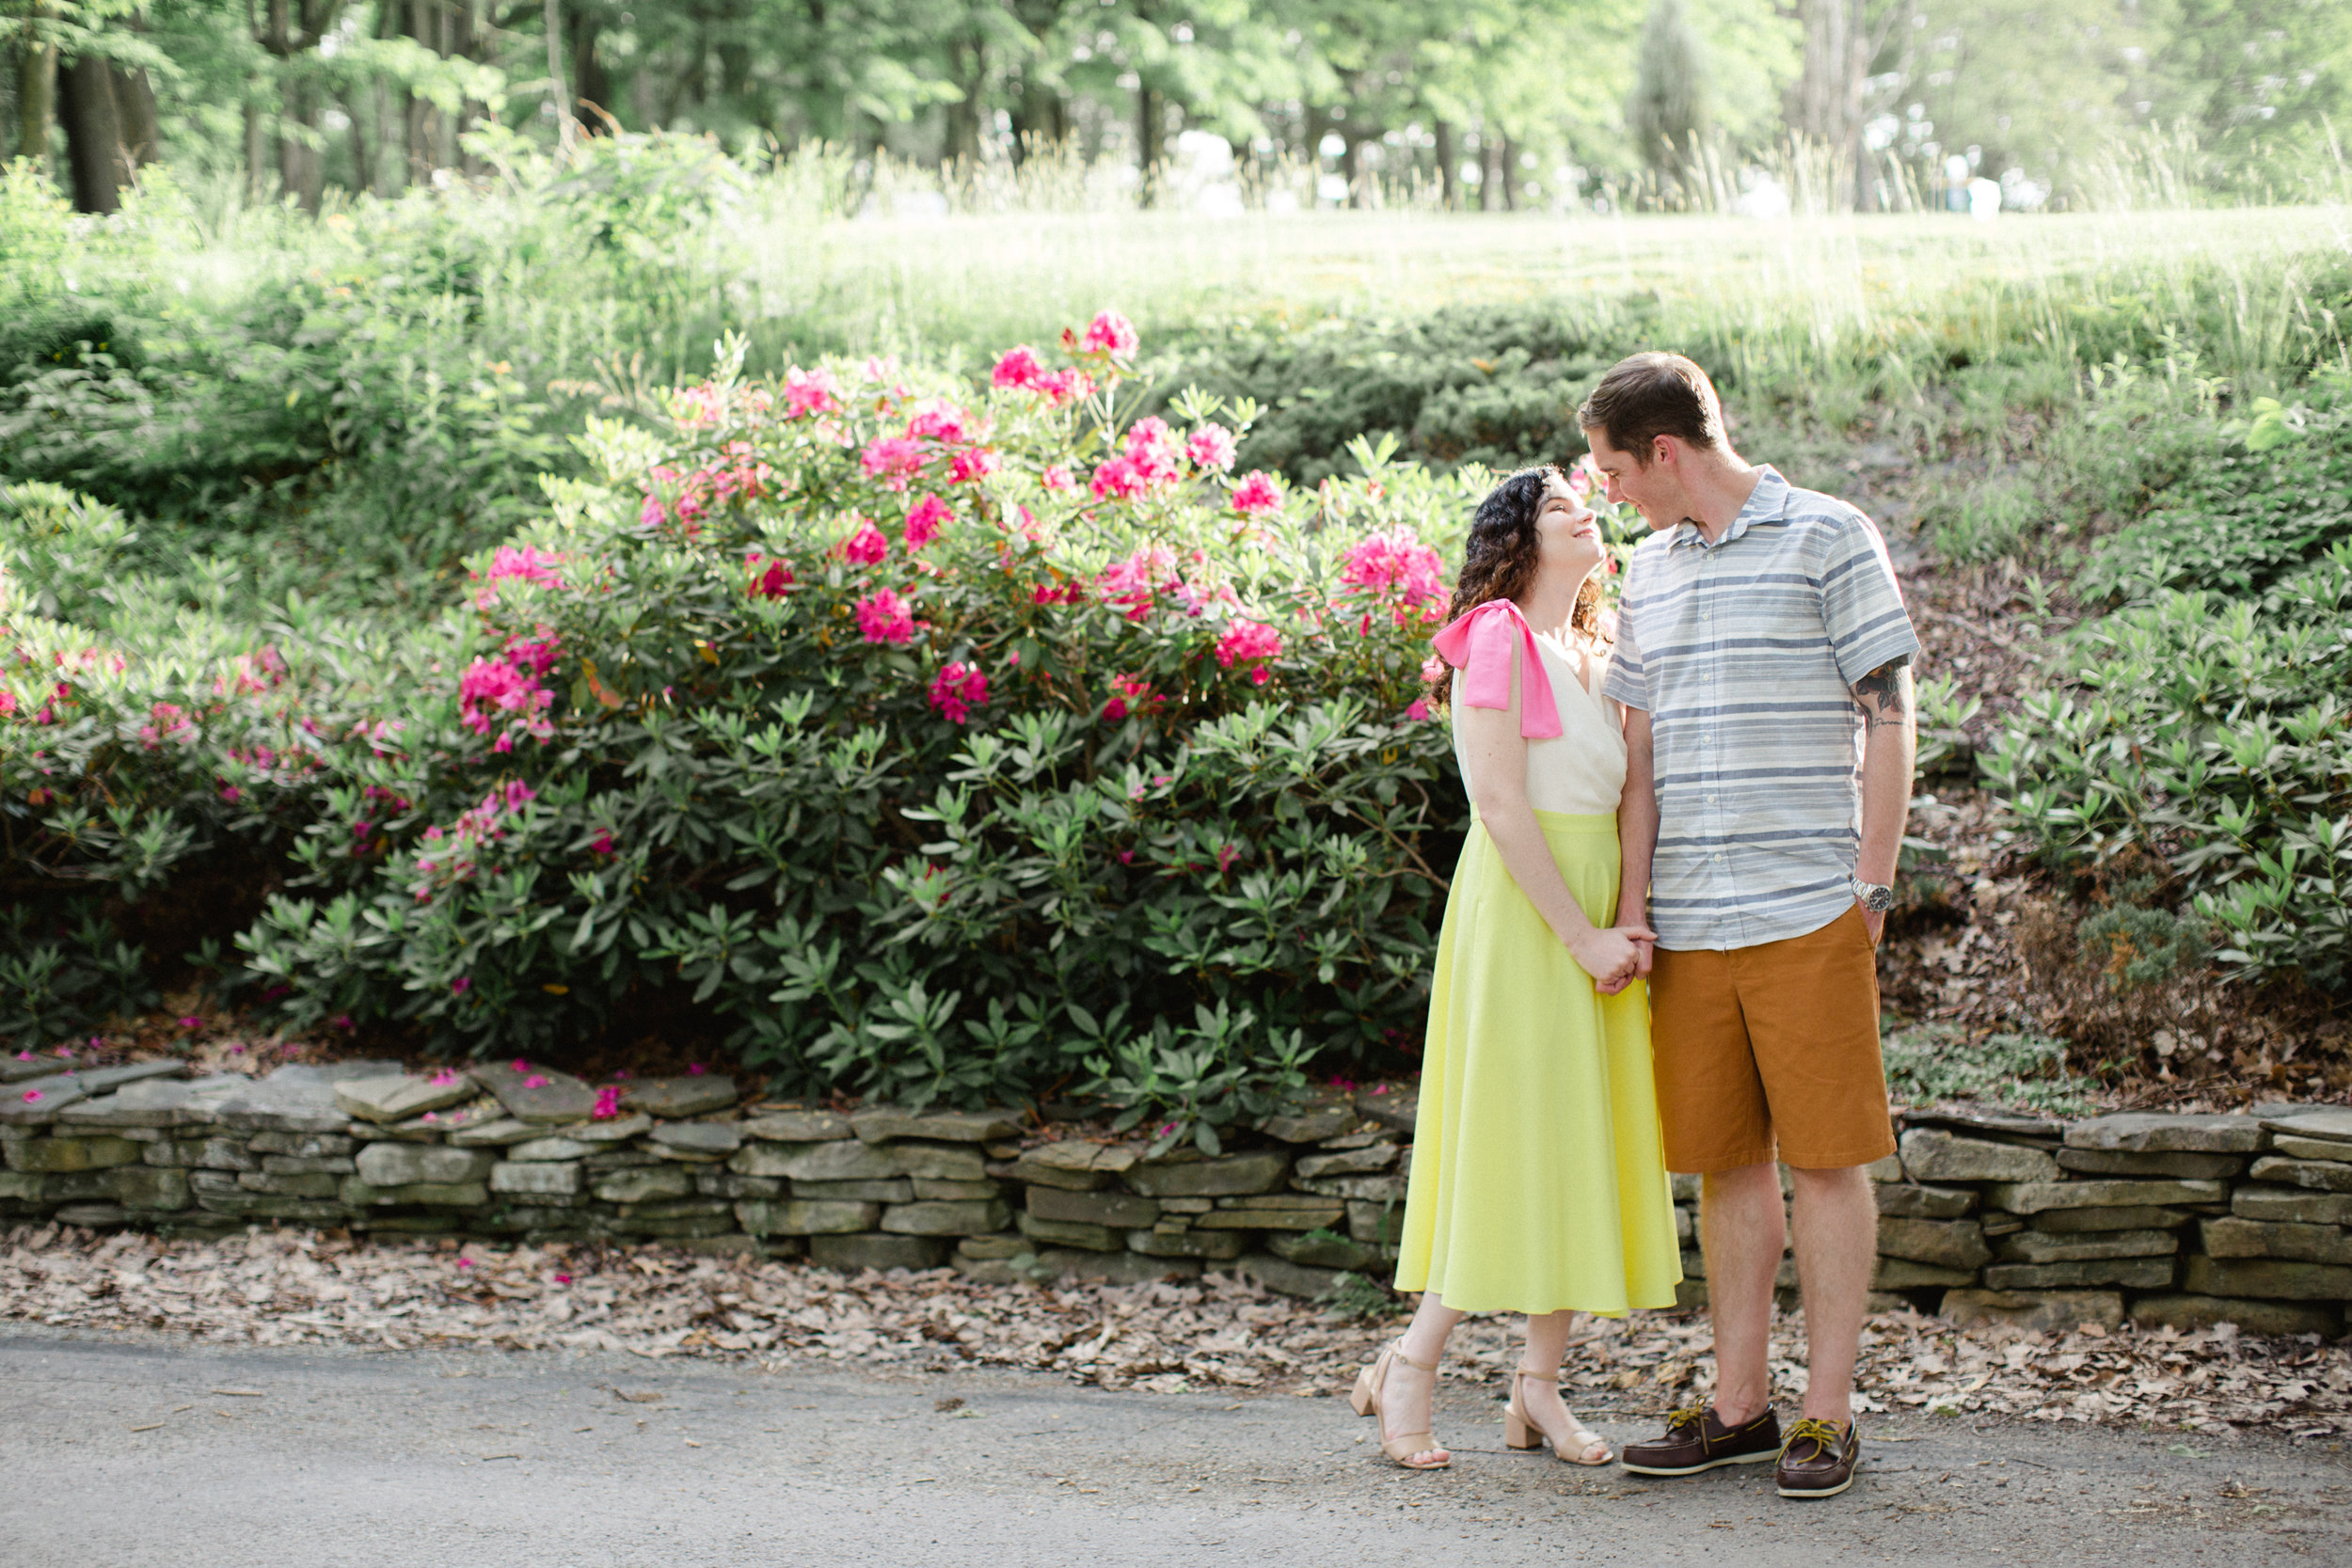 Moscow PA Engagement Session Photos_JDP-8.jpg